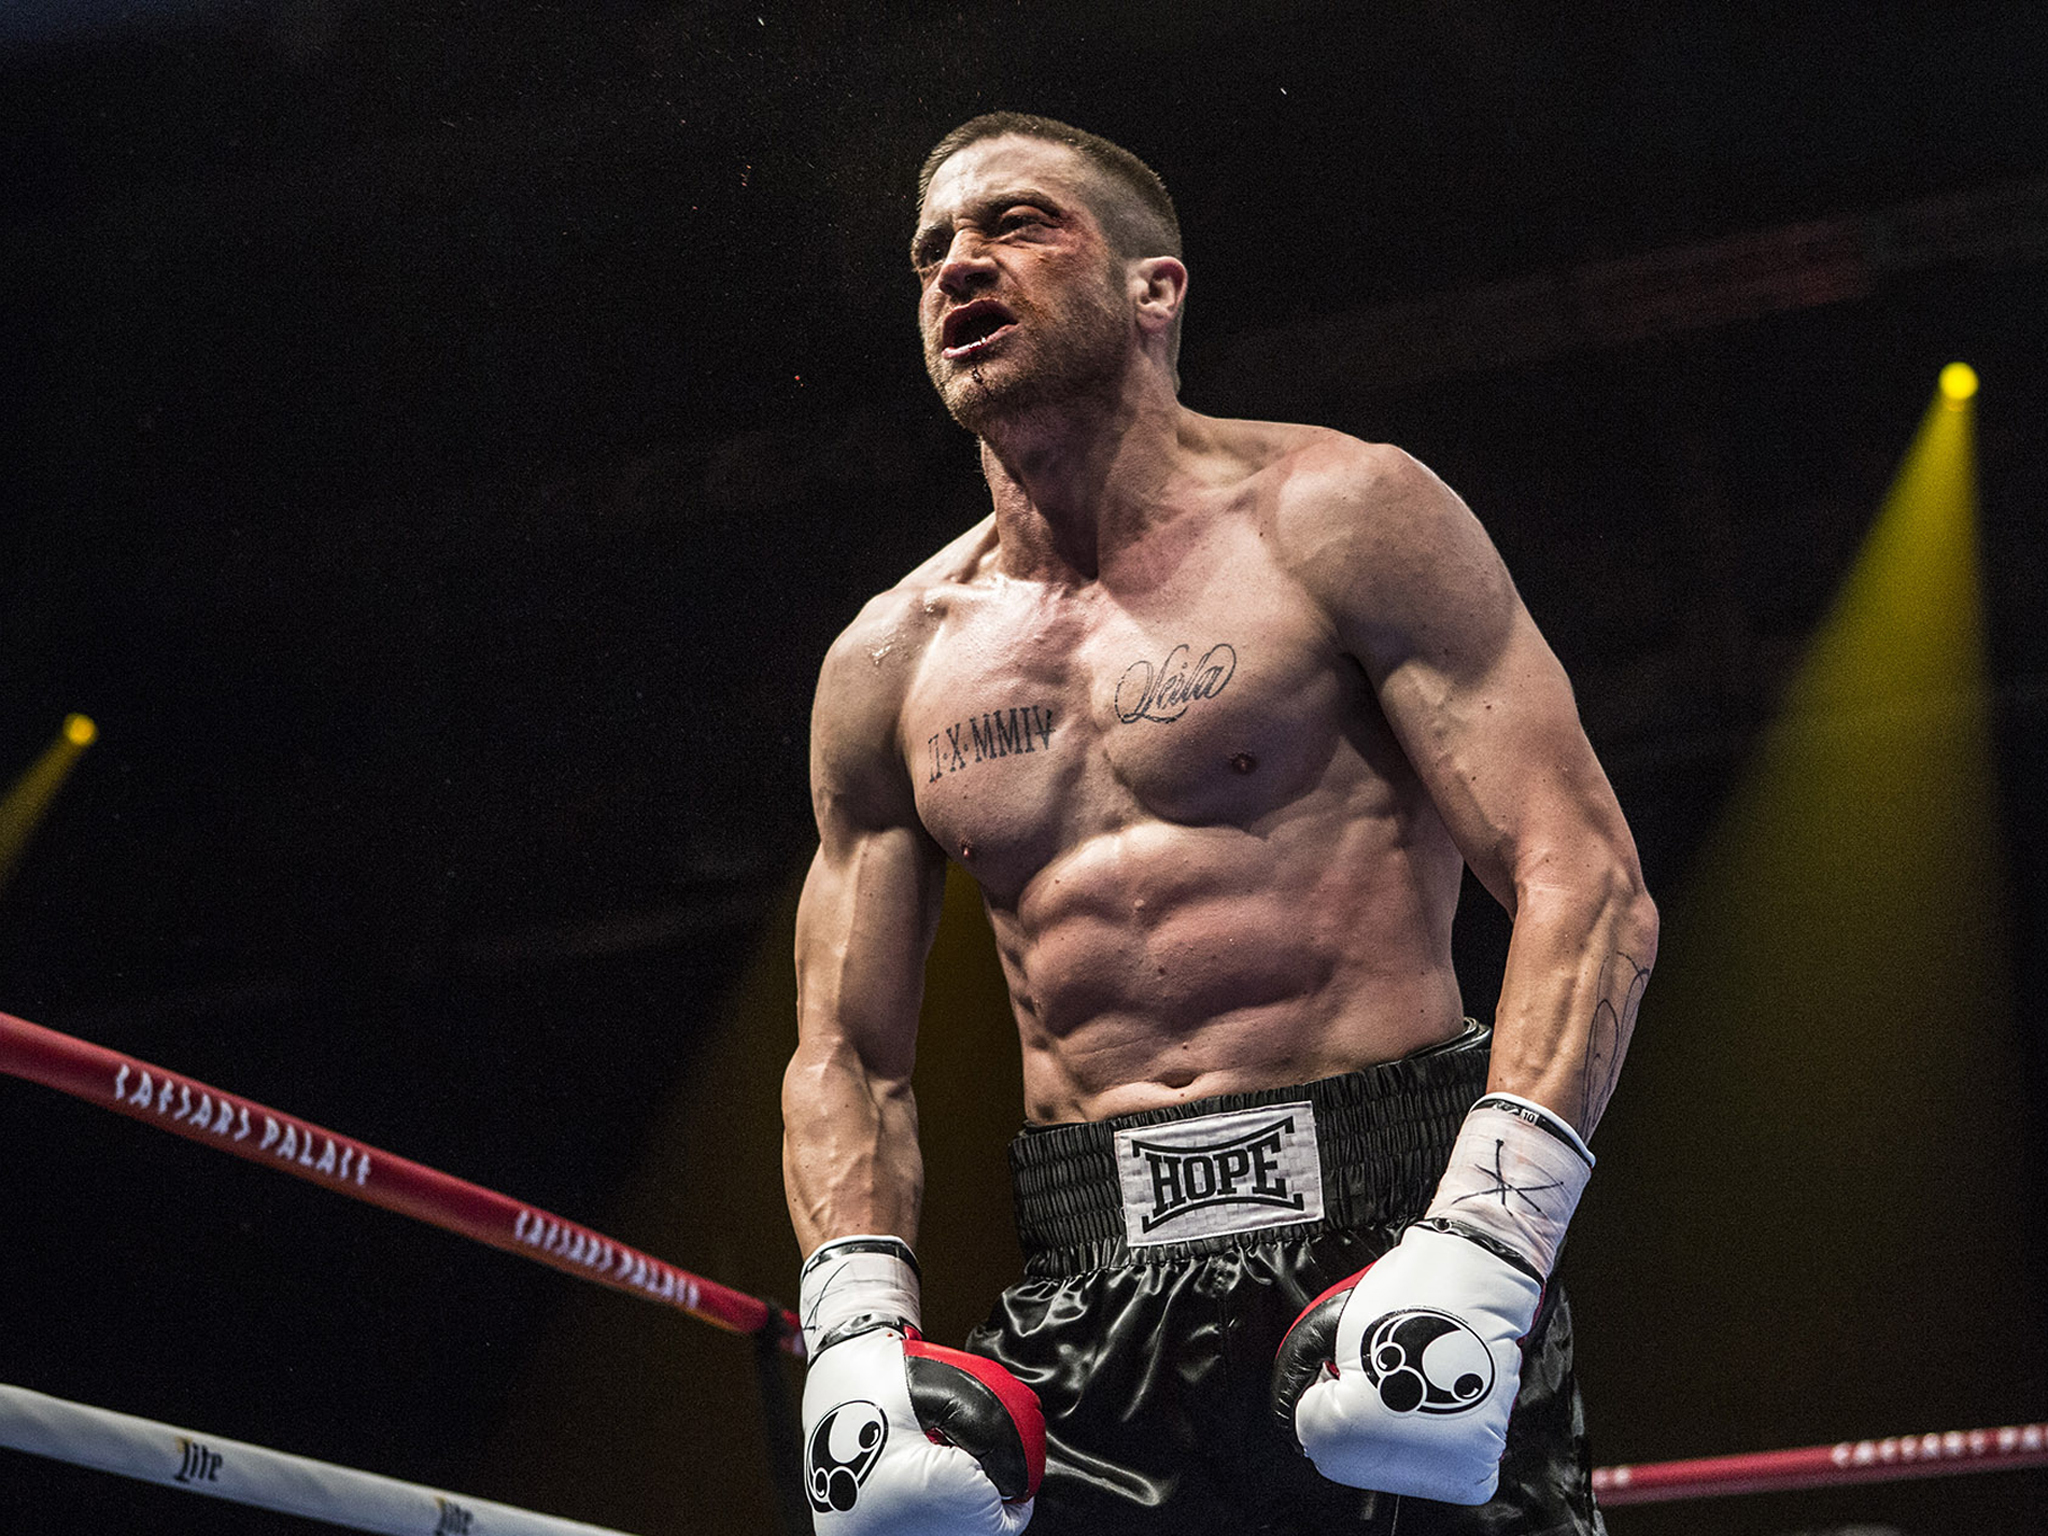 Jake Gyllenhaul in South Paw Photo: Scott Garfield © 2014 The Weinstein Company.